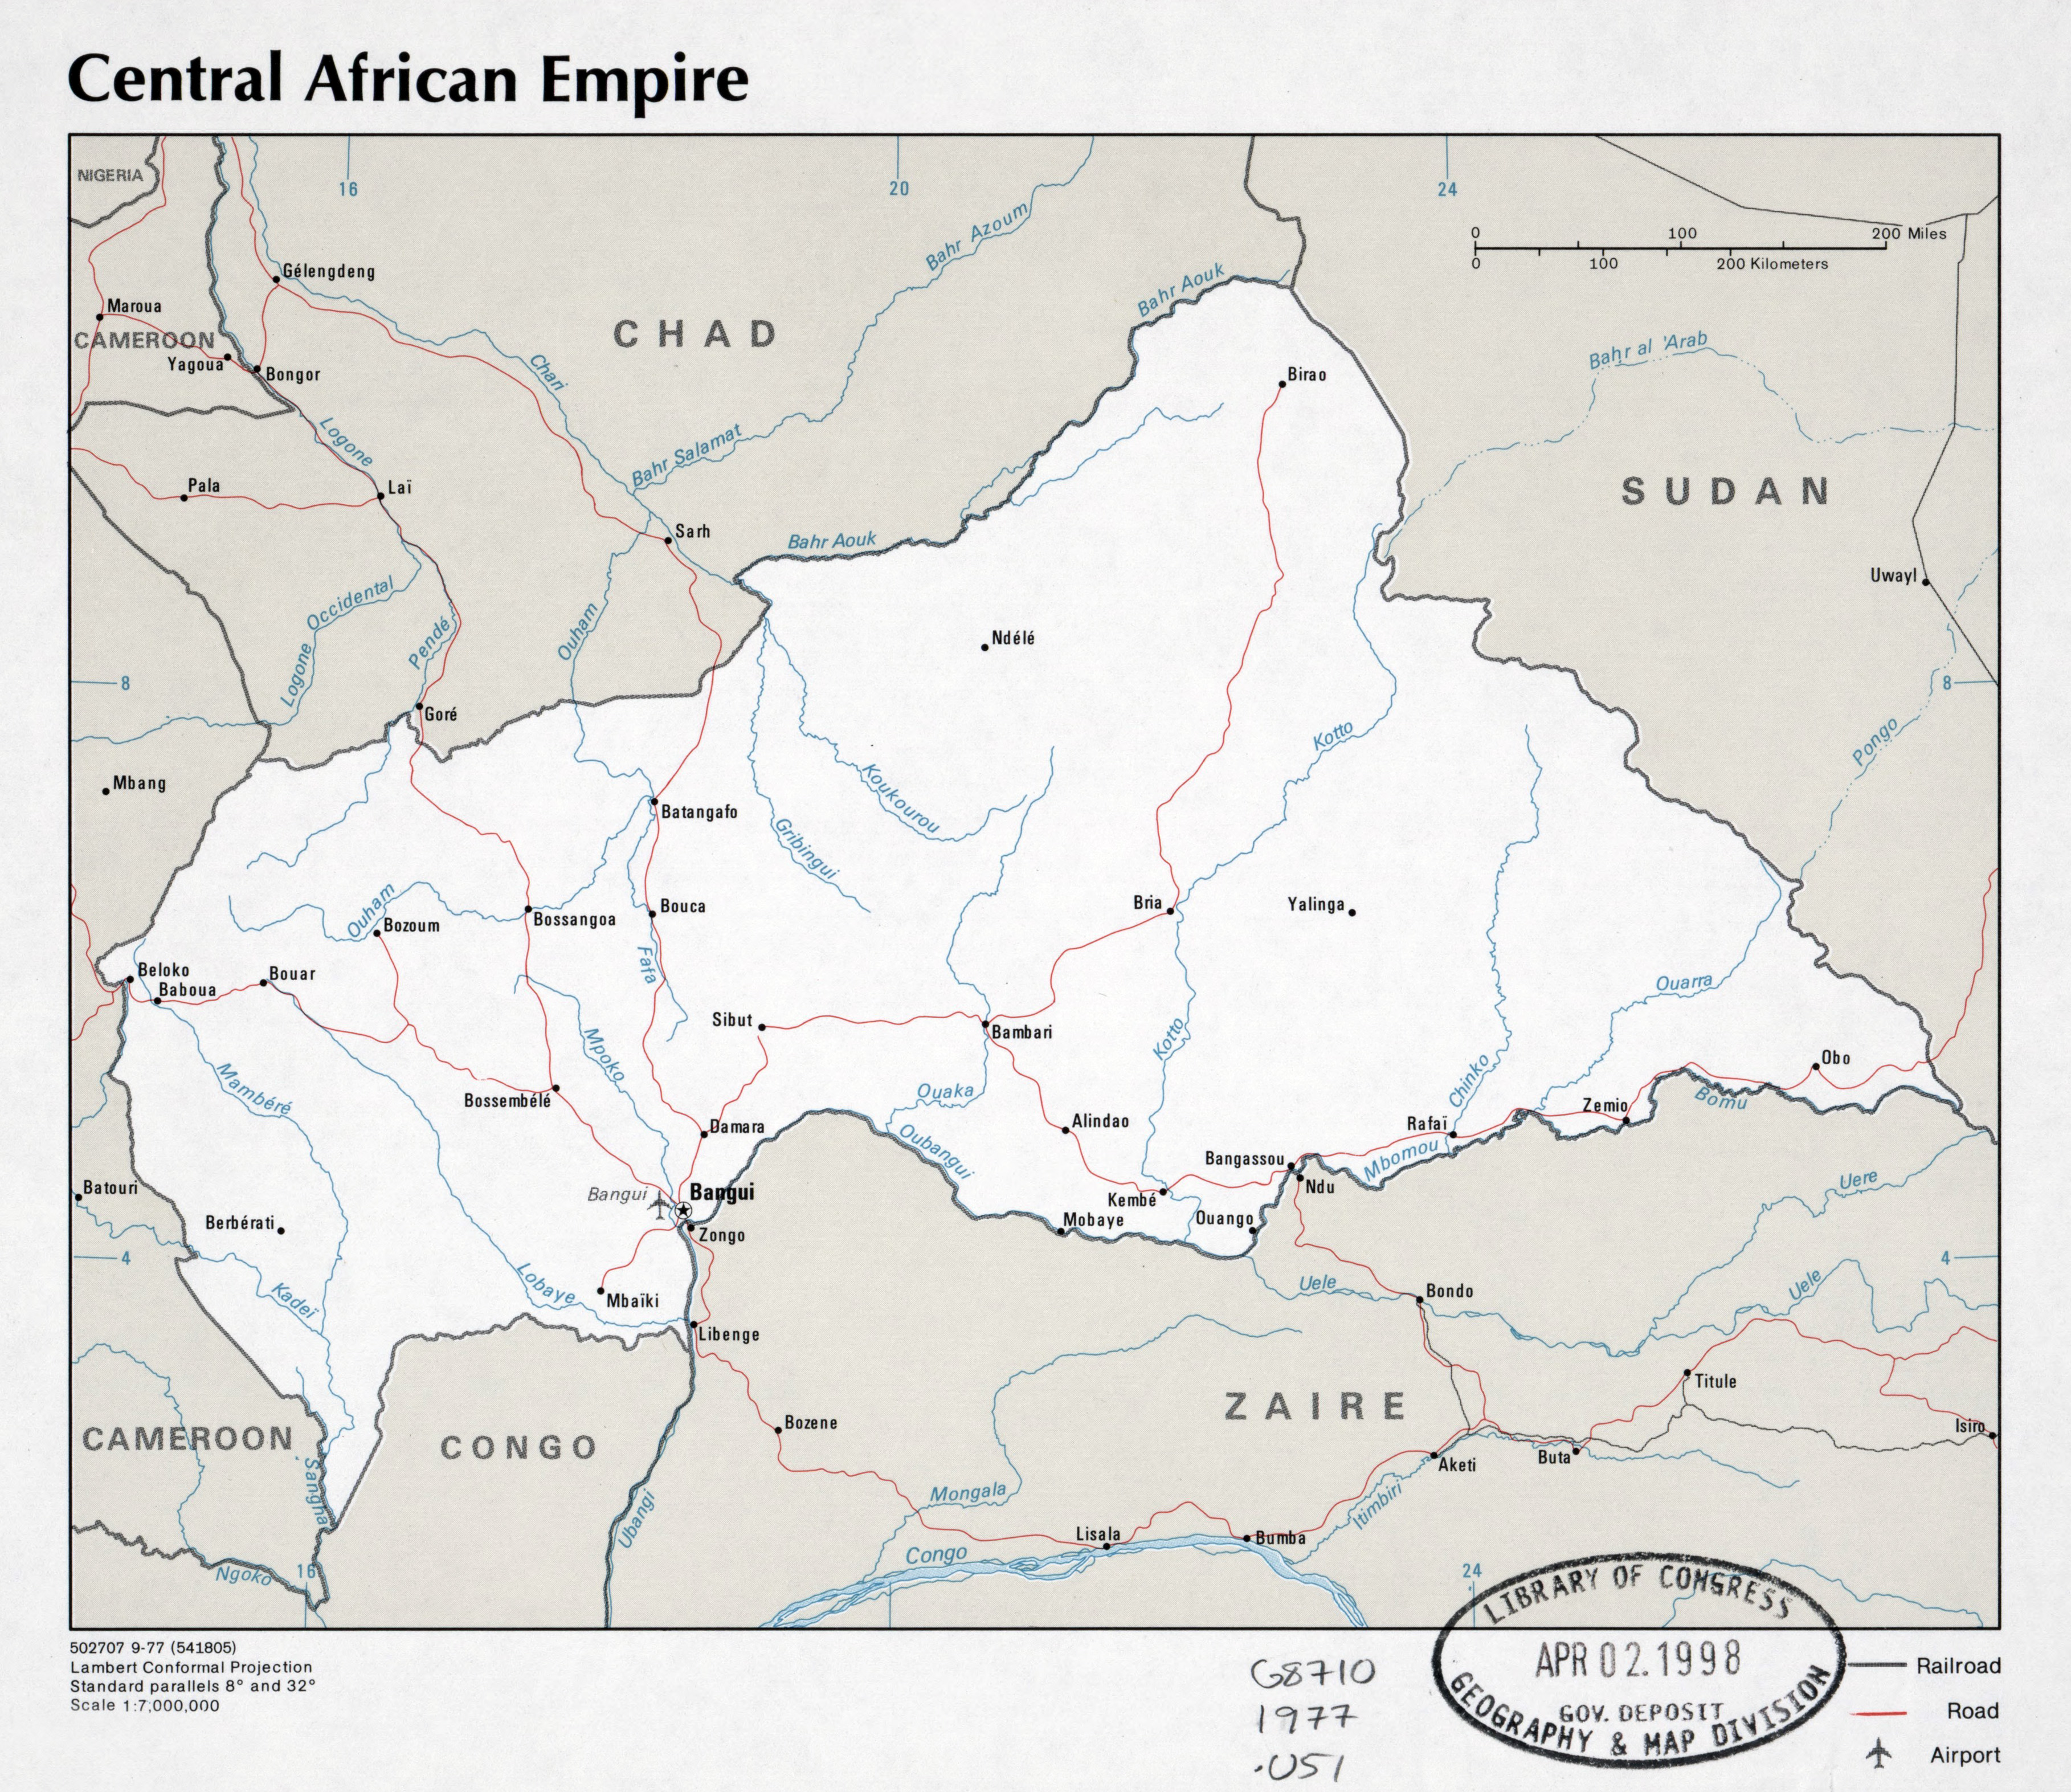 Large Scale Political Map Of Central African Empire With Roads